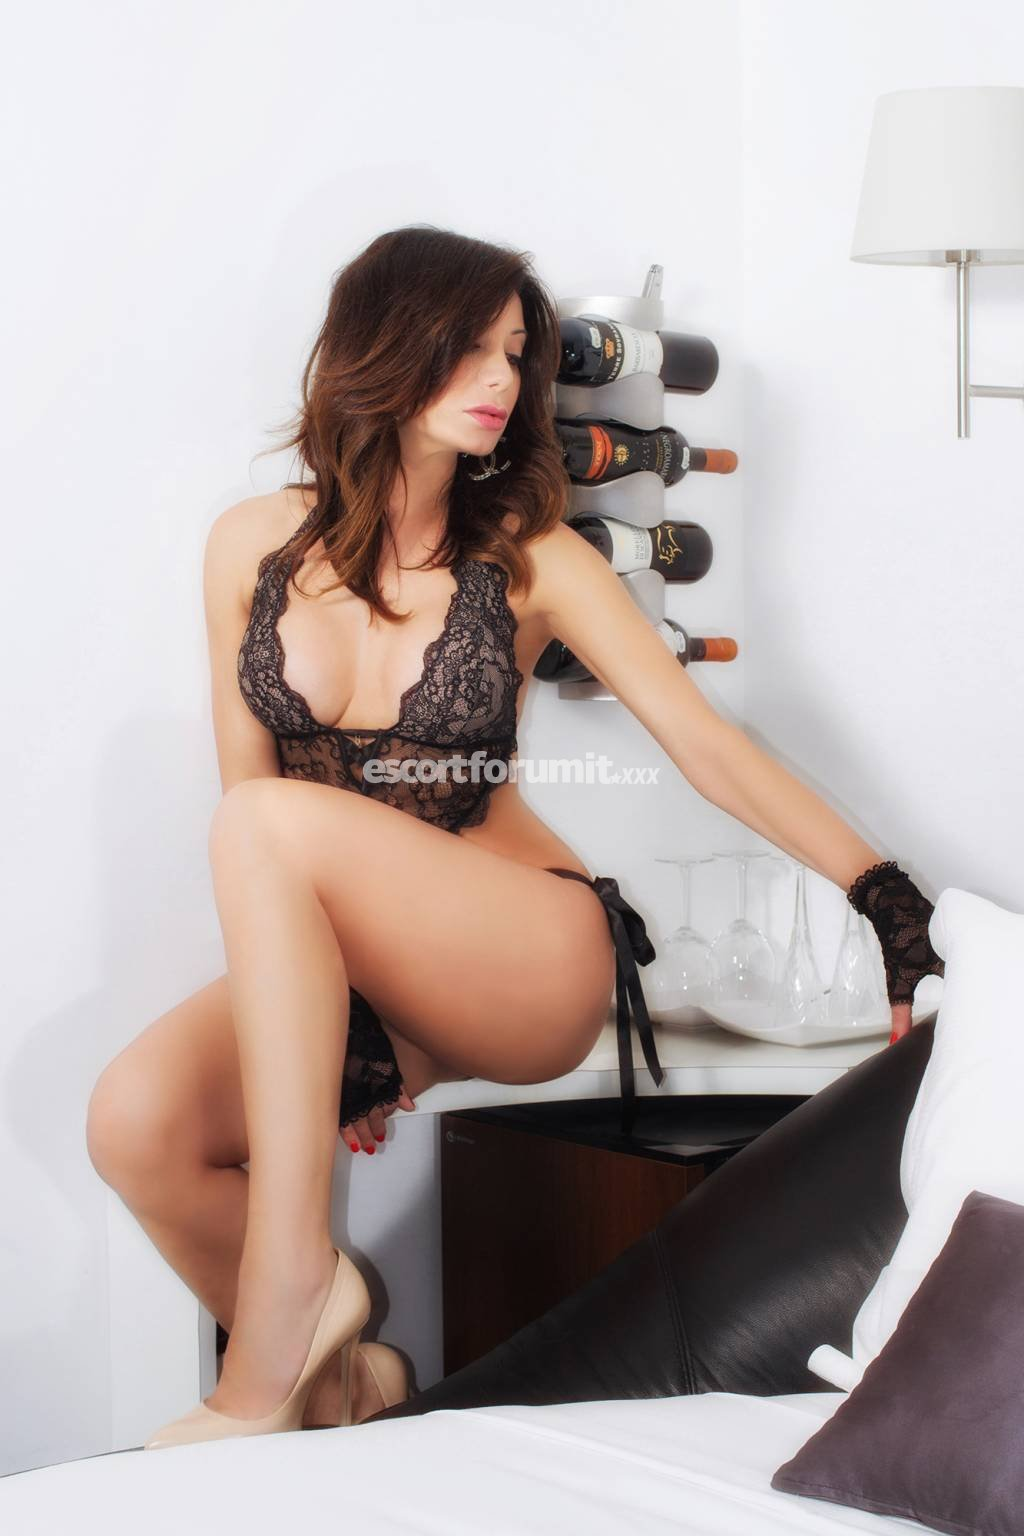 geje sex escort forum italia